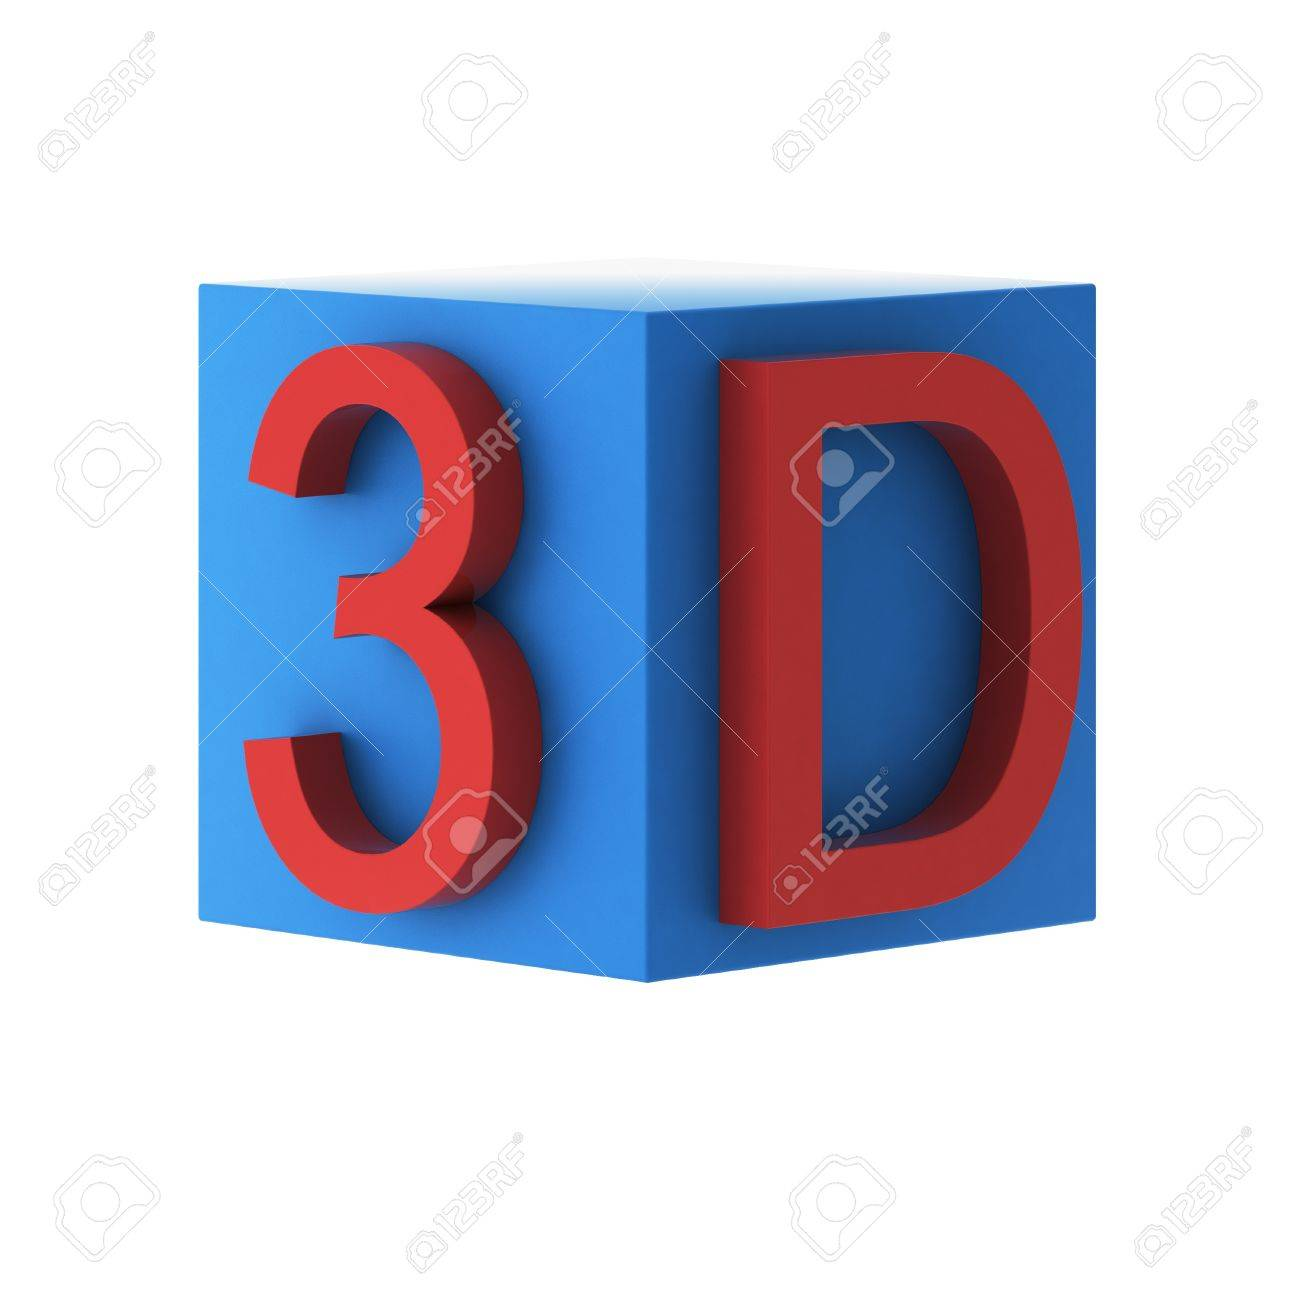 3d render of 3d sign Stock Photo - 9217365